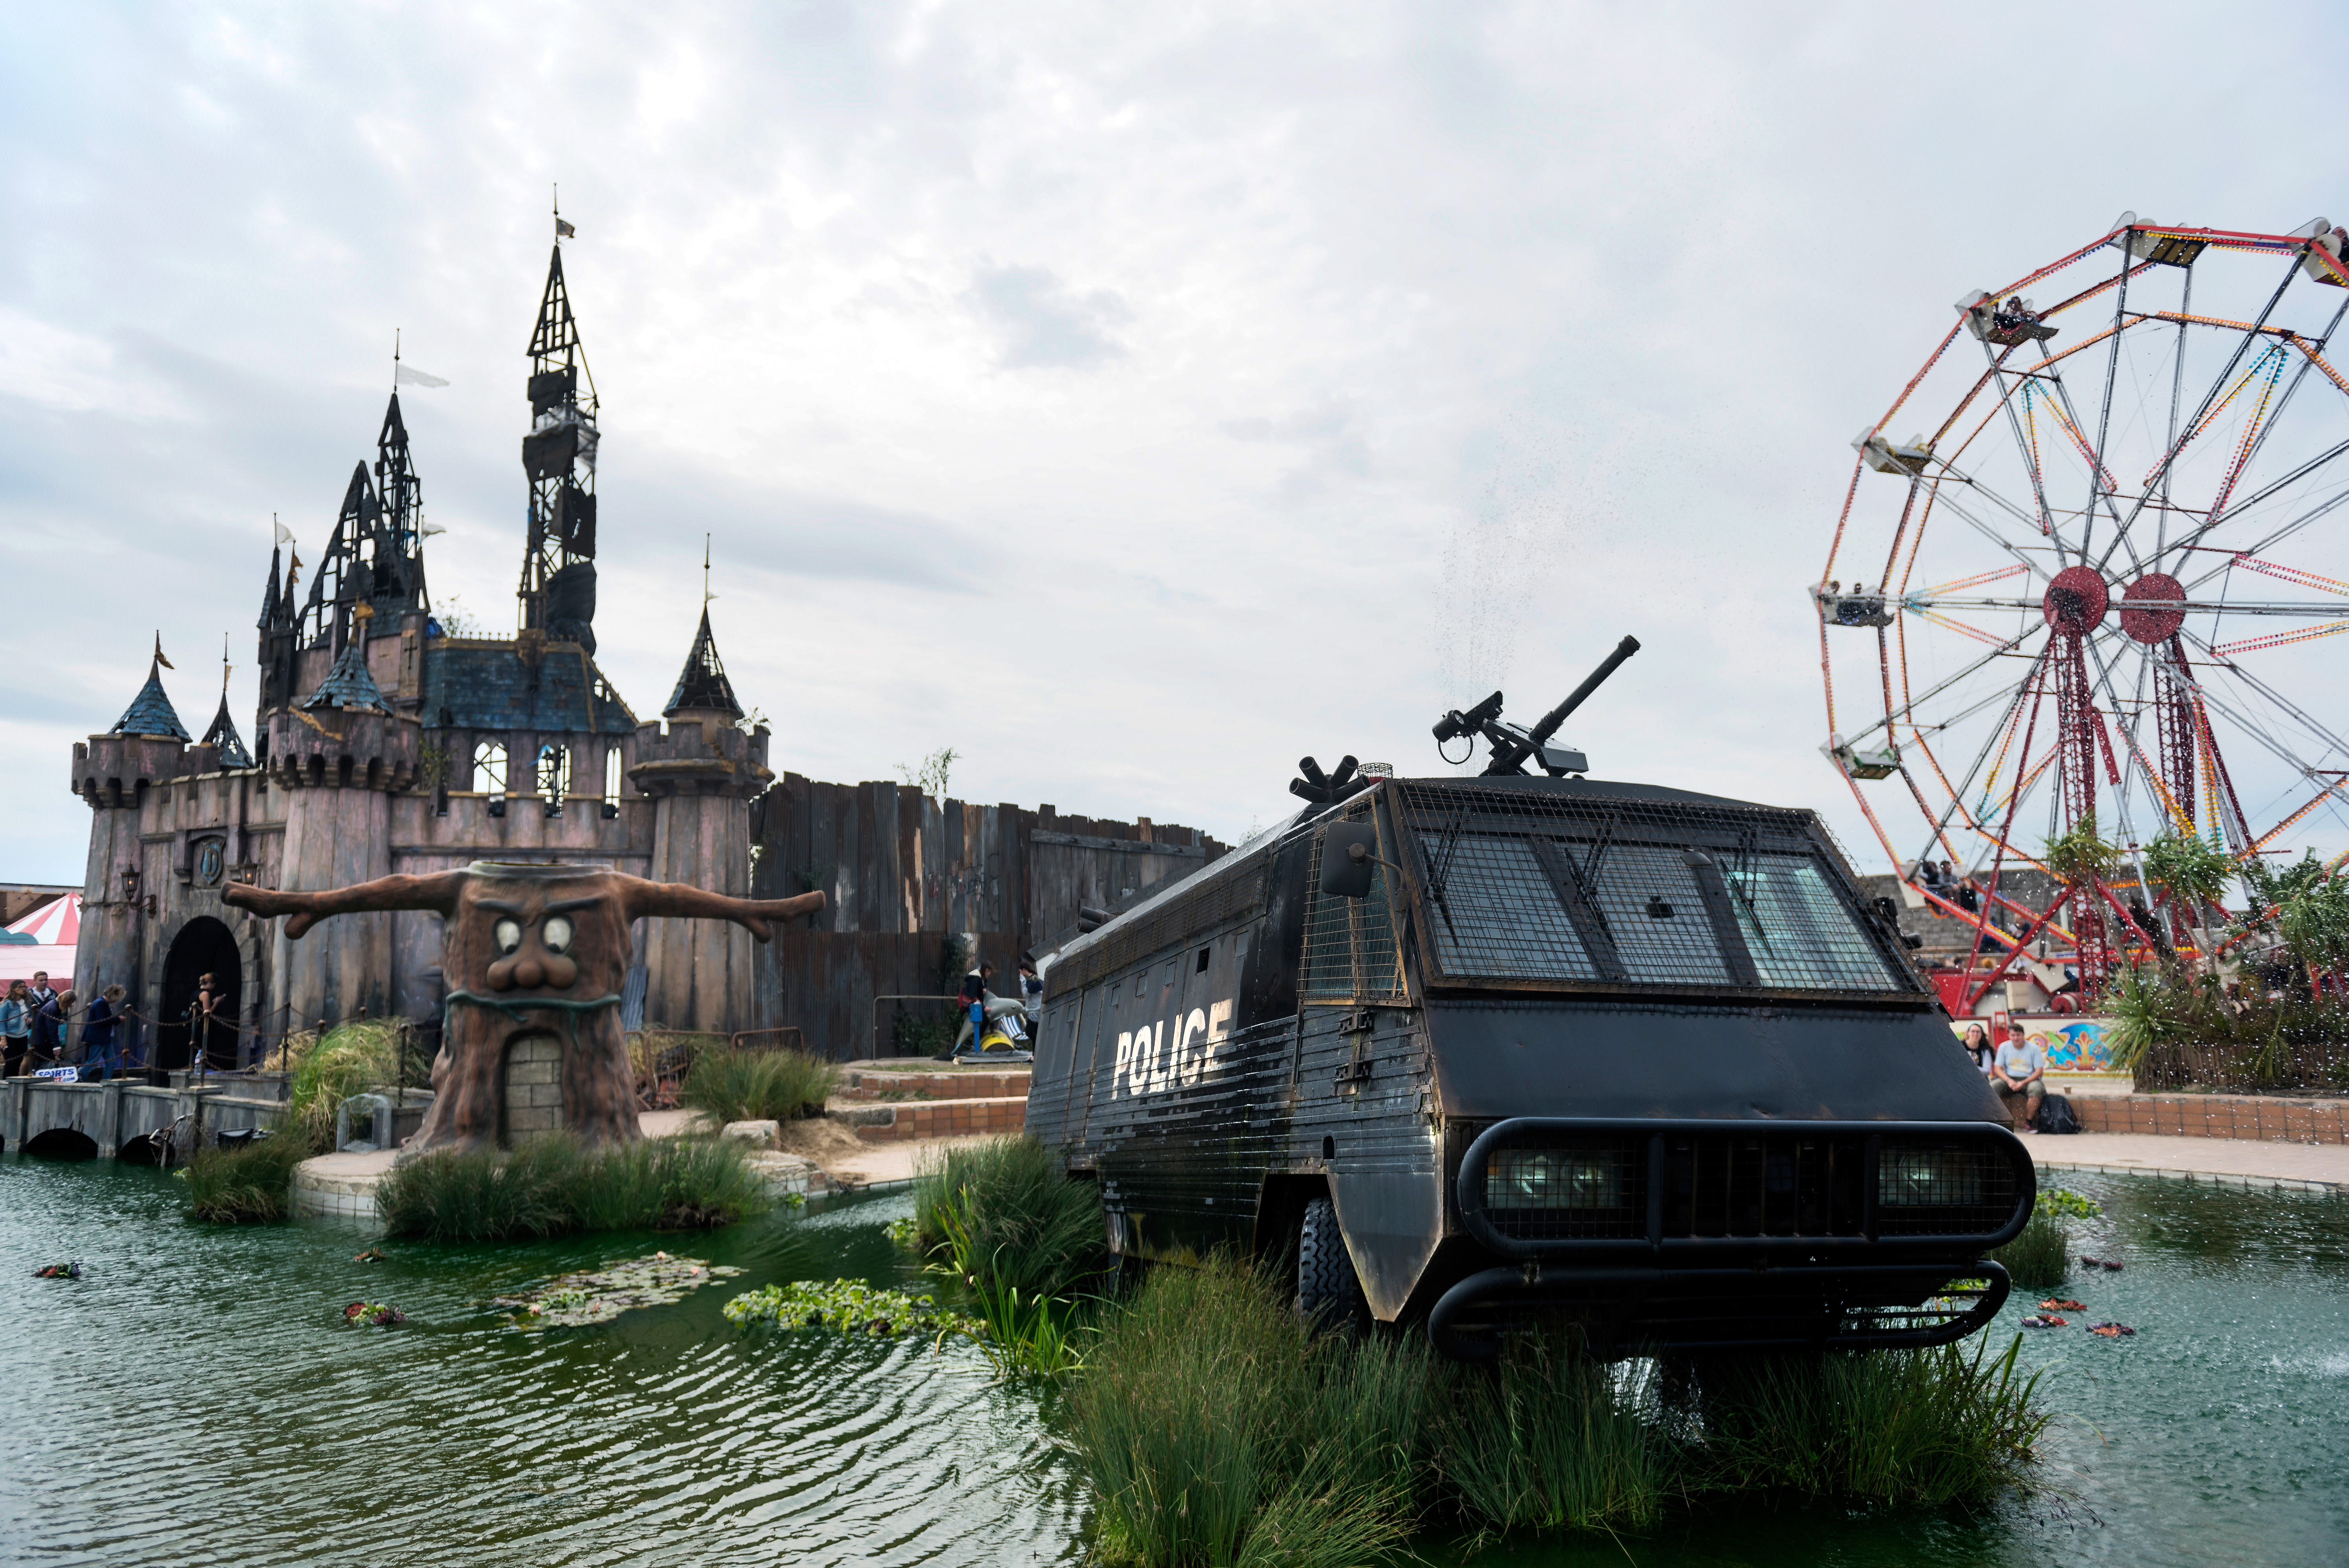 at Banksy's Dismaland on September 10, 2015 in Weston-Super-Mare, England.